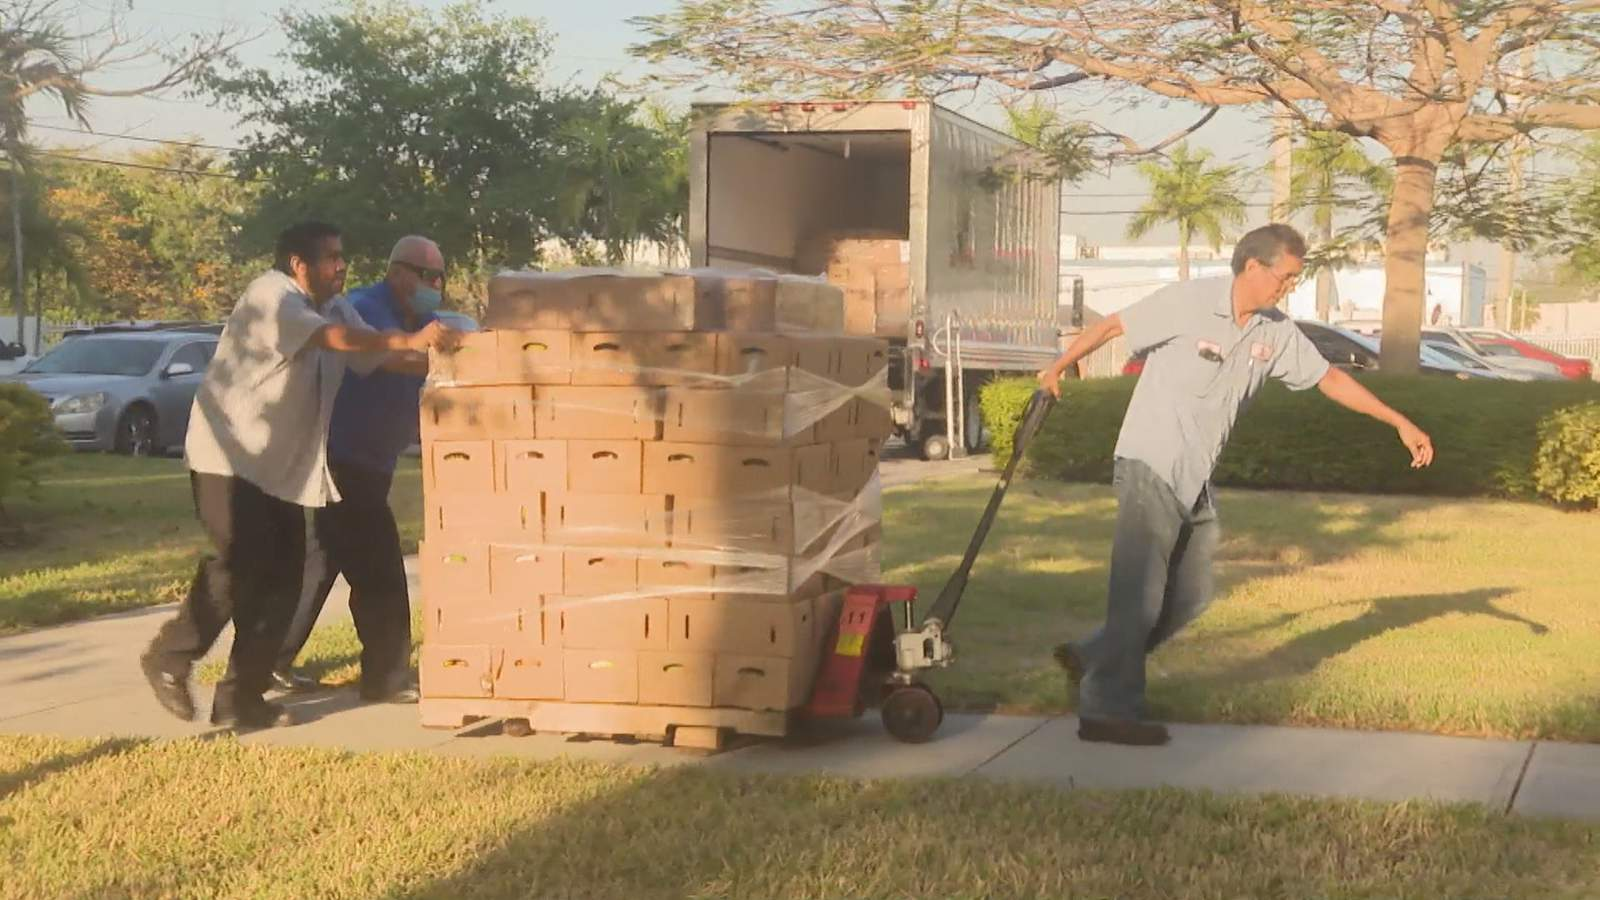 Food distributed to seniors, others in need amid coronavirus crisis